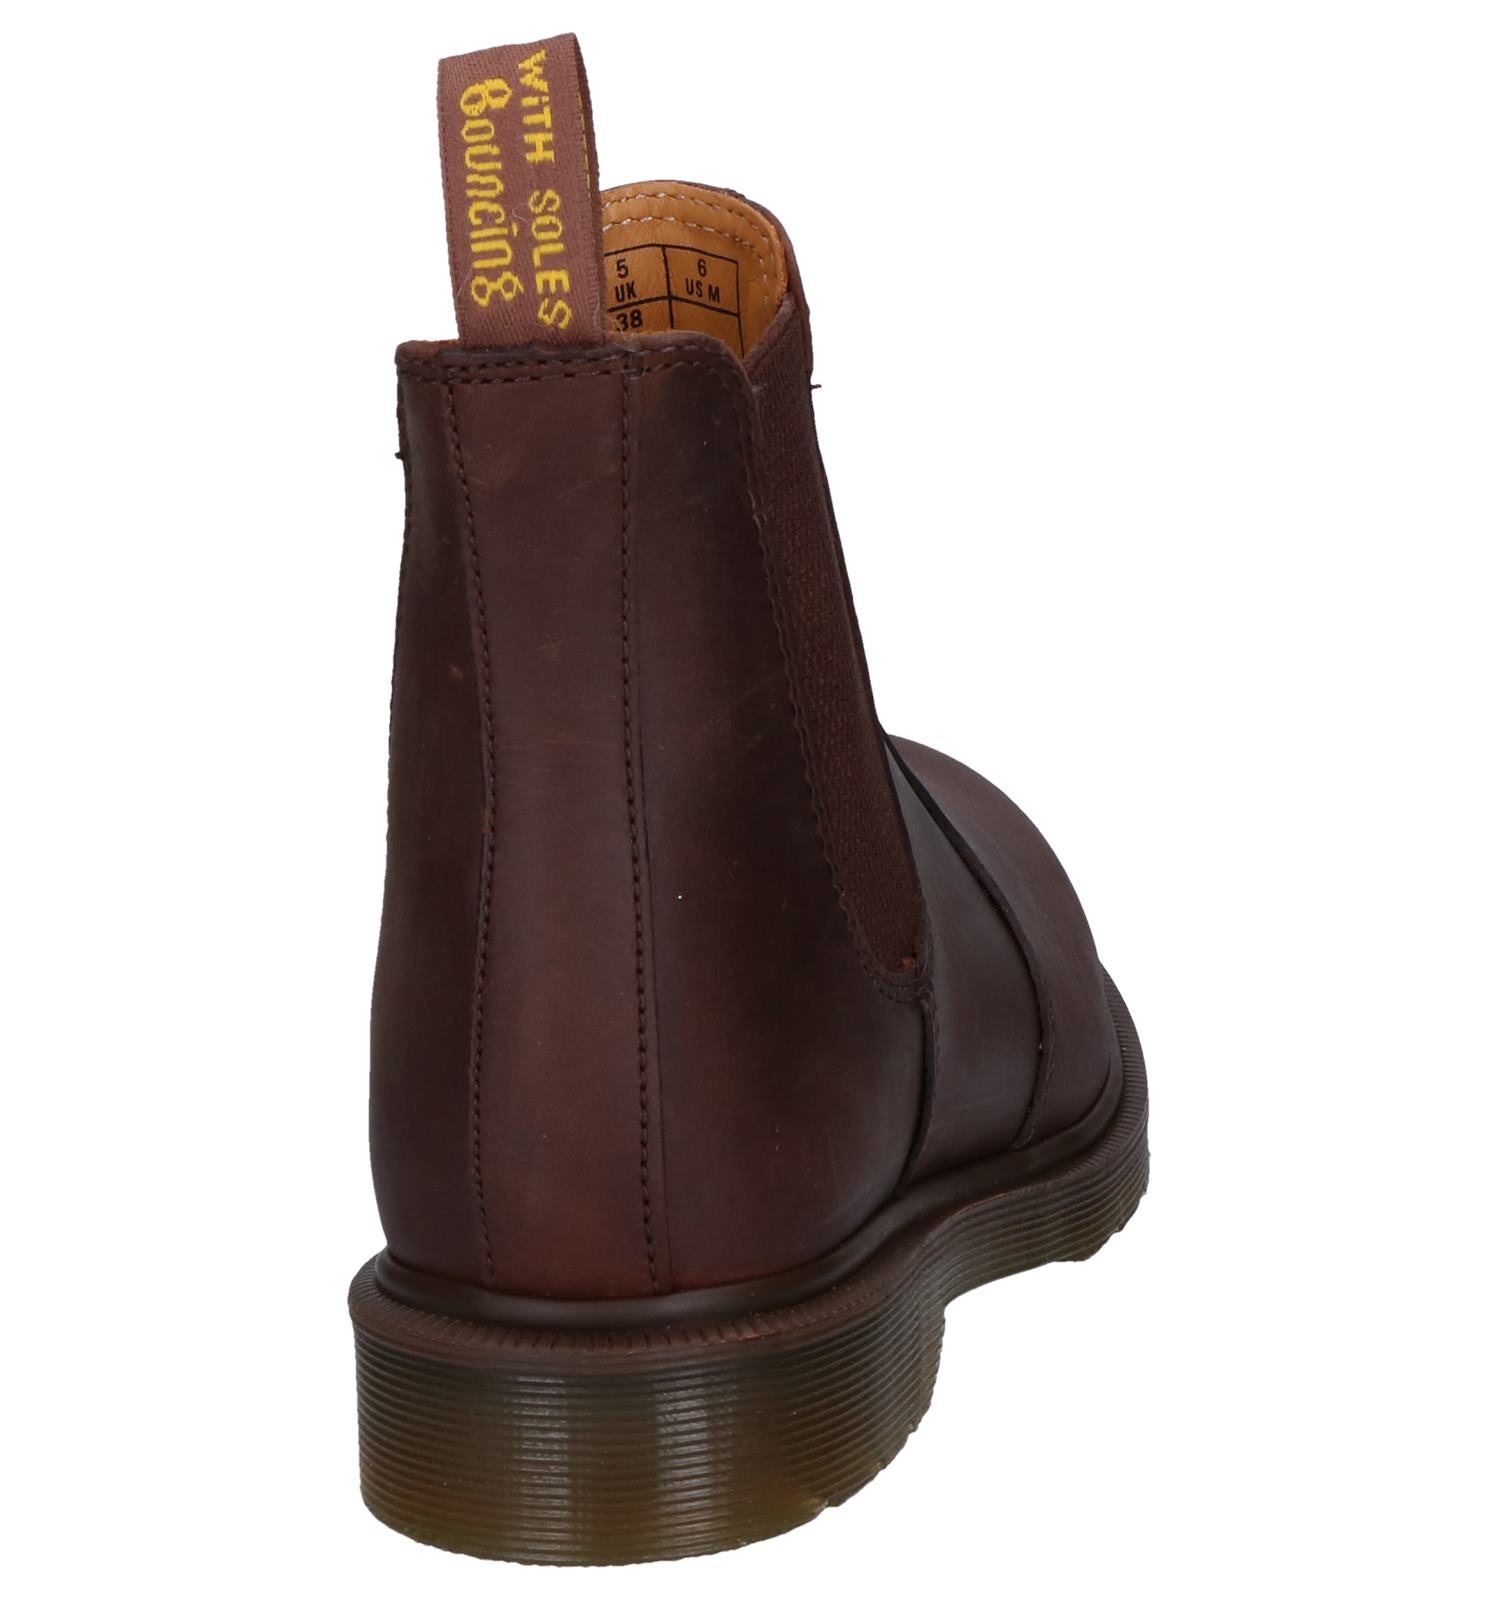 Boots DrMartens Bruine Boots Chelsea Boots DrMartens Chelsea DrMartens Bruine Chelsea Bruine DrMartens Bruine DIb9WeEH2Y